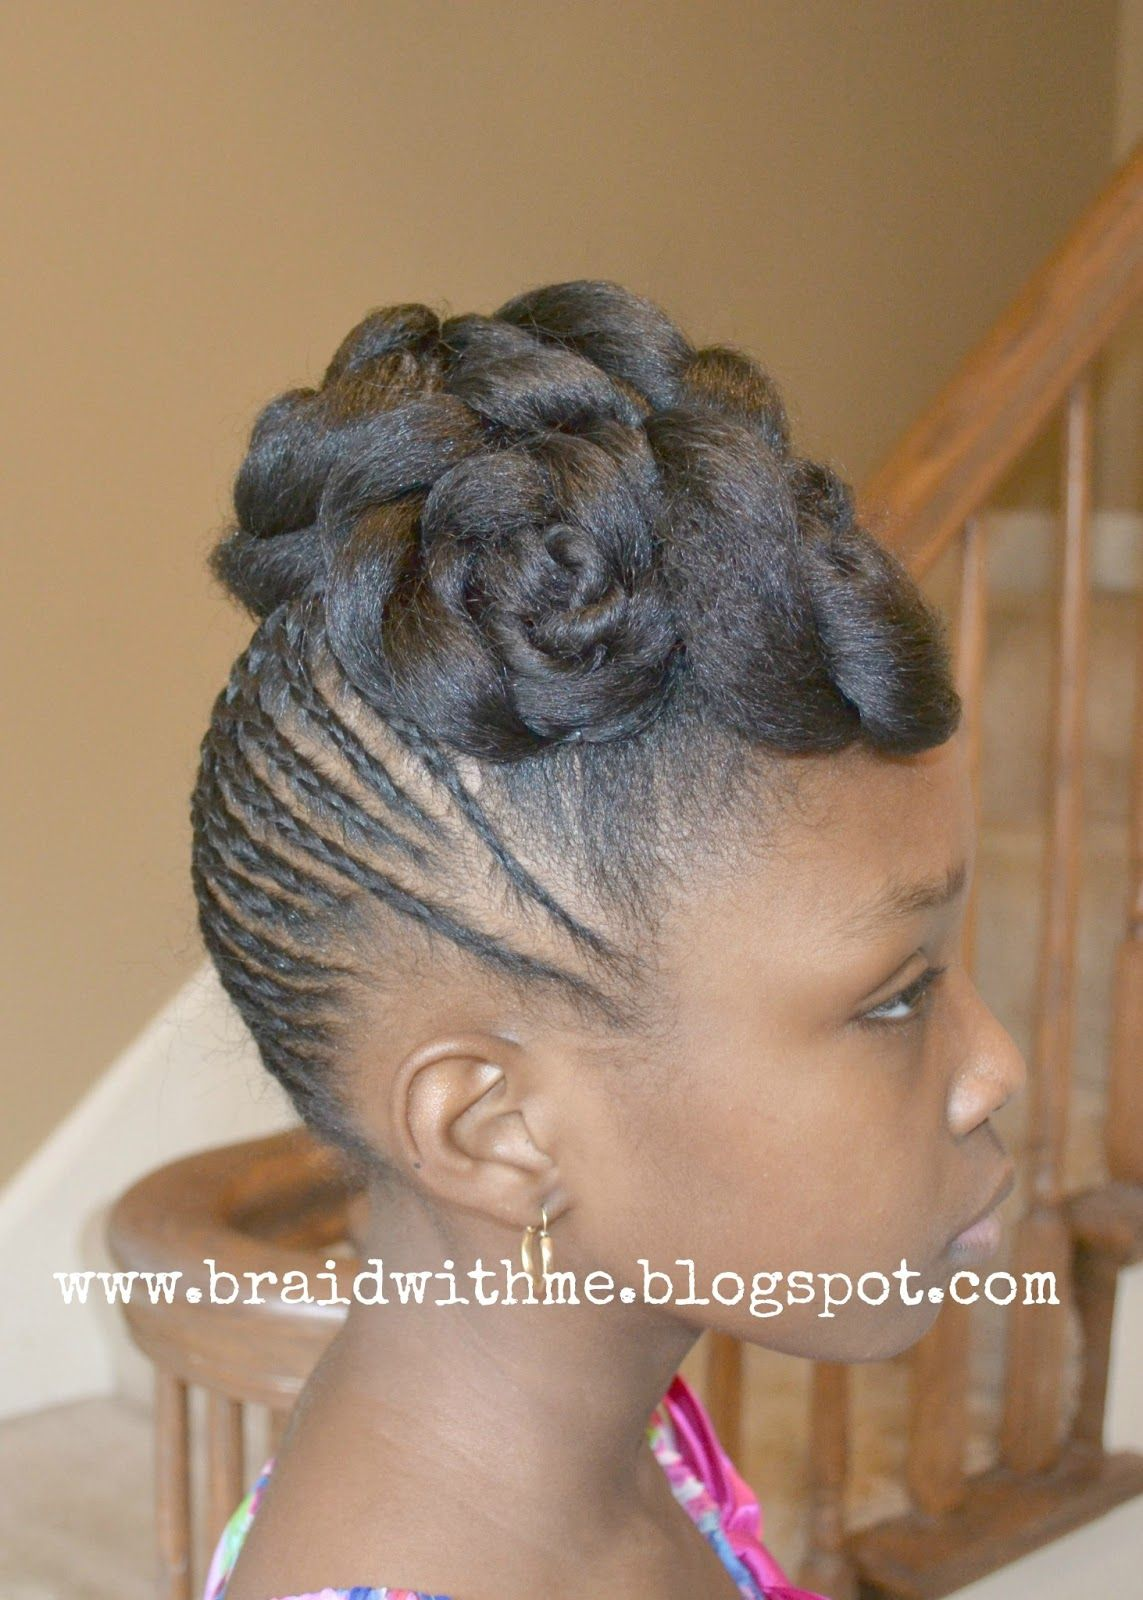 Braid with me easter updo for natural hair hair for the girls little black girl braid styles with beads kids hair little girls girls generation easter updo little black girls pmusecretfo Images